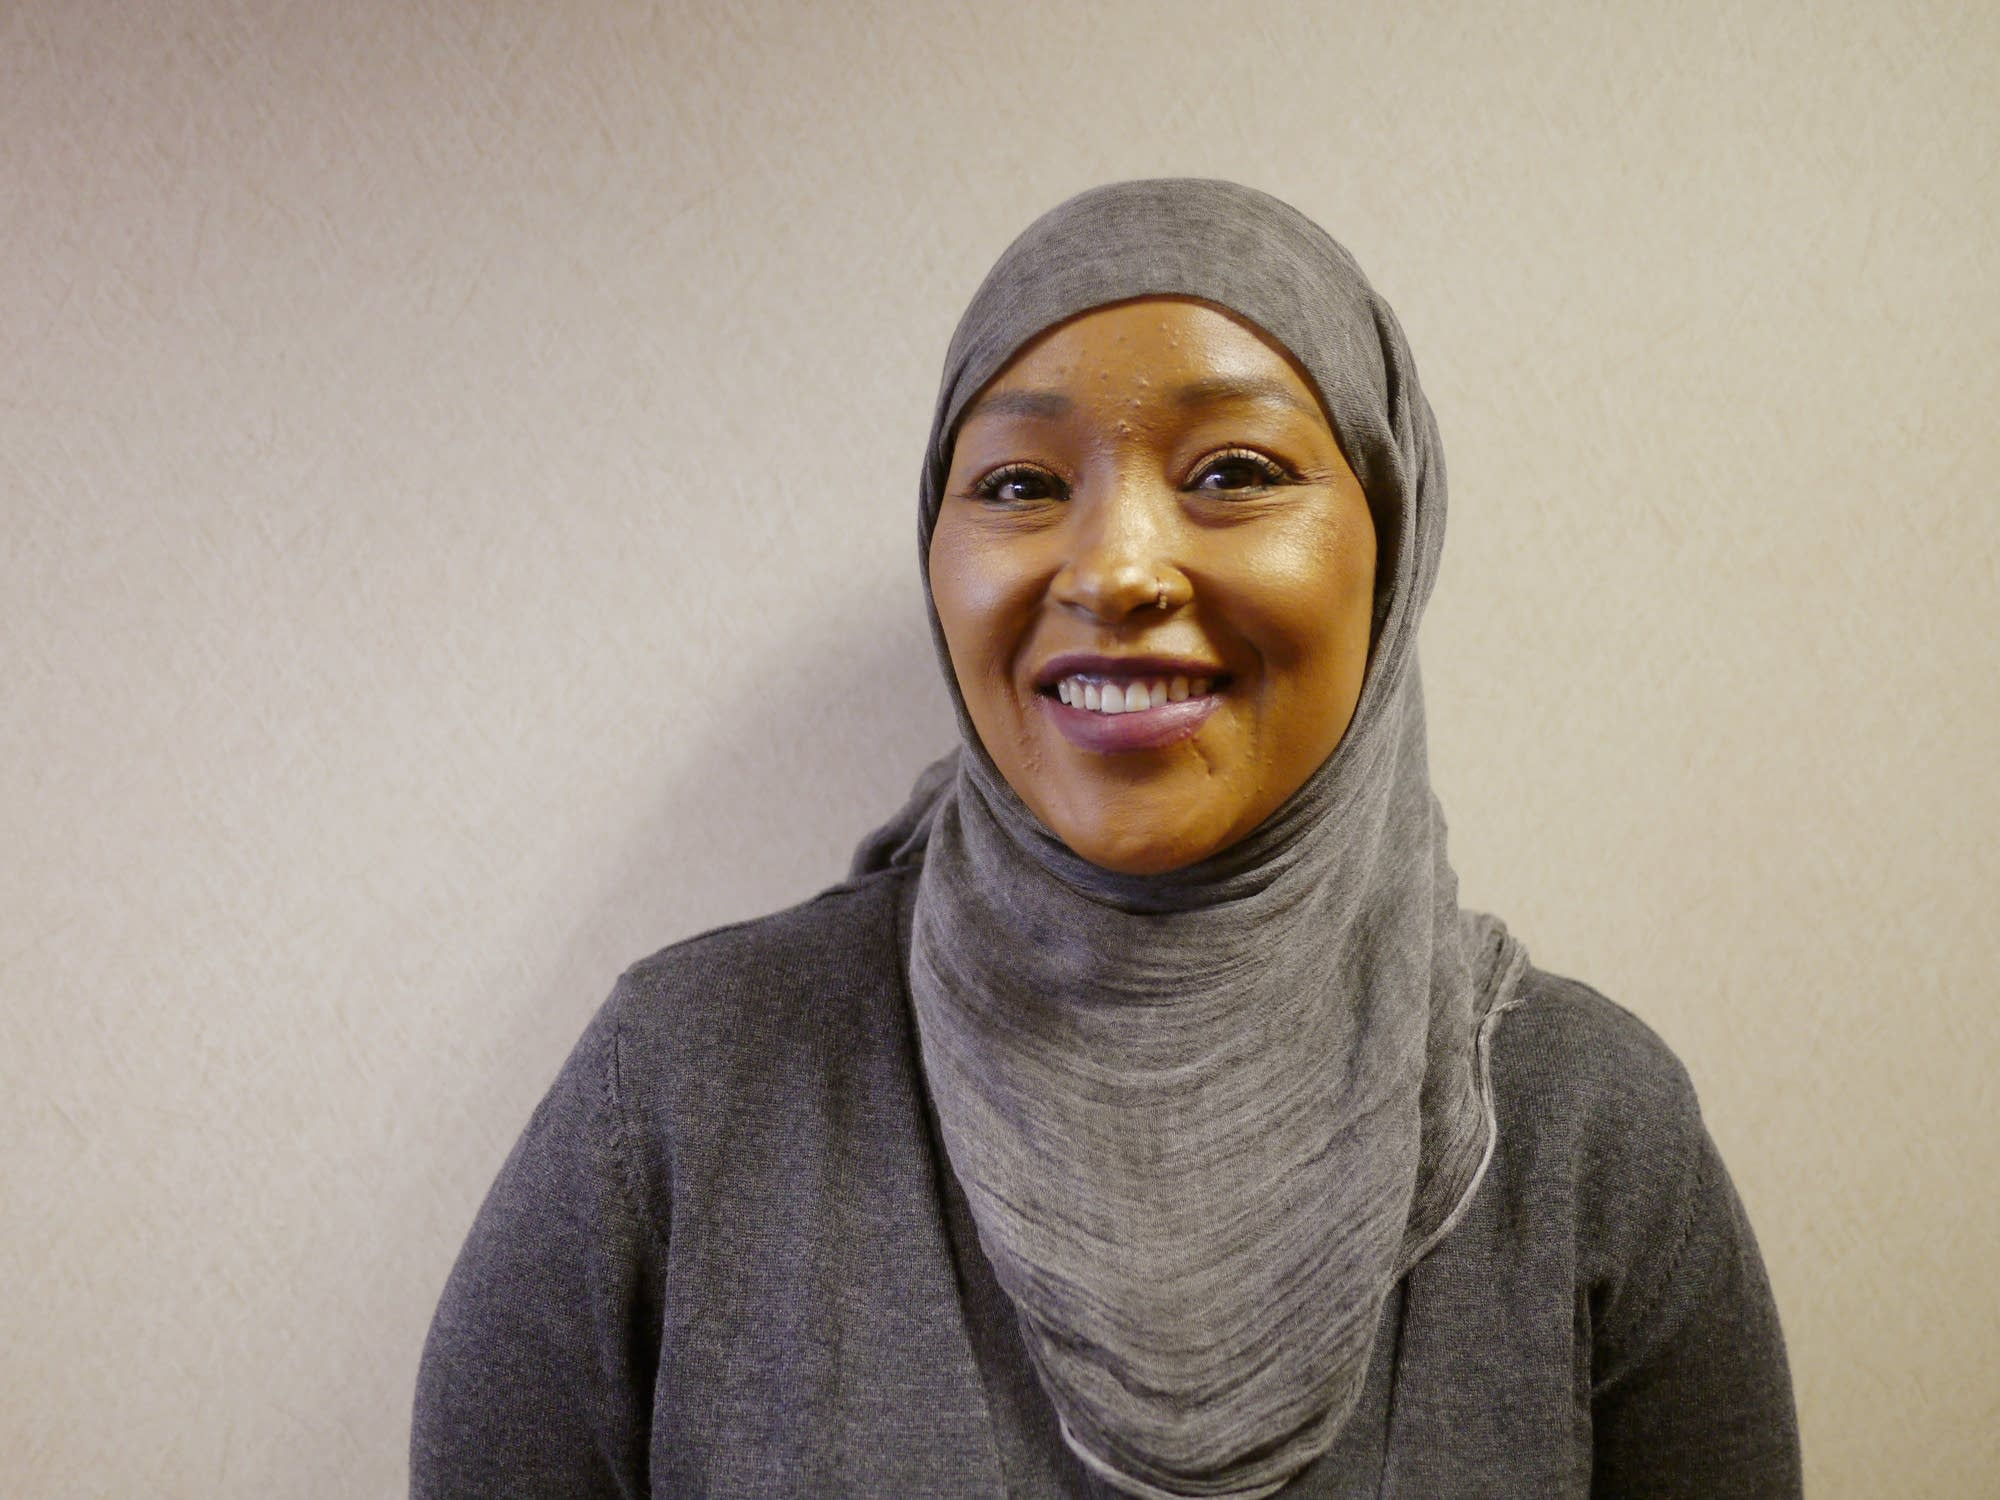 Asma Jama on Monday at Anoka County Courthouse